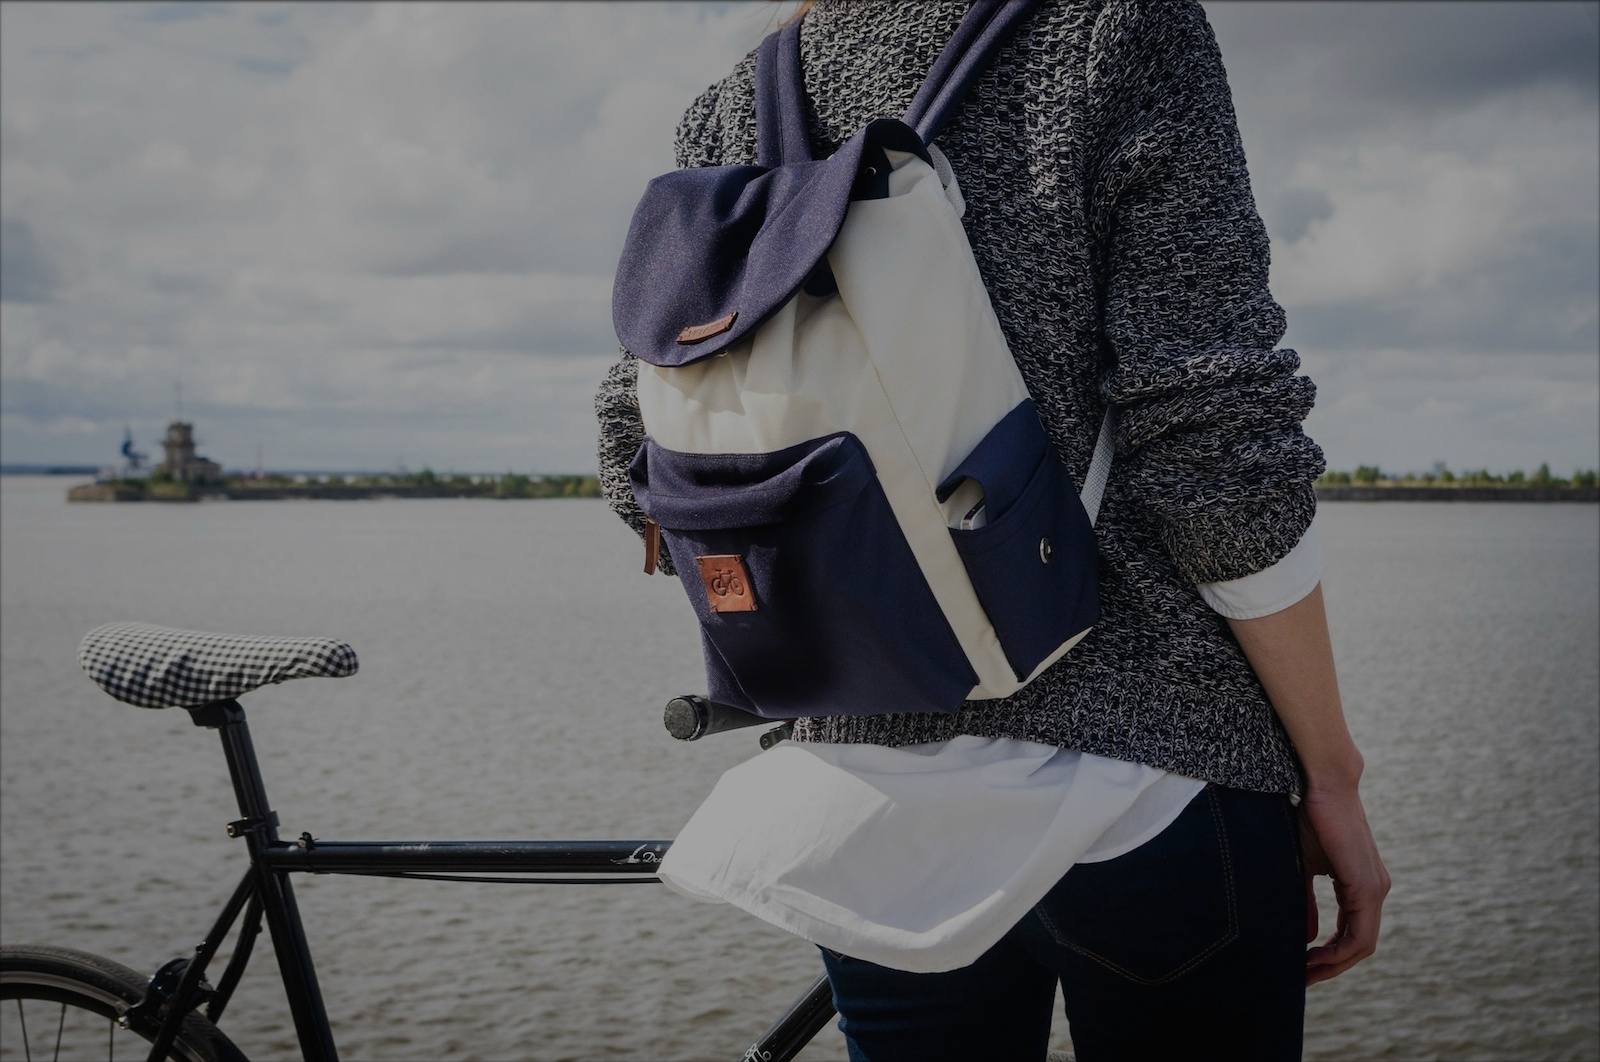 #velotton. bags, accessories, apps and guides for cyclists